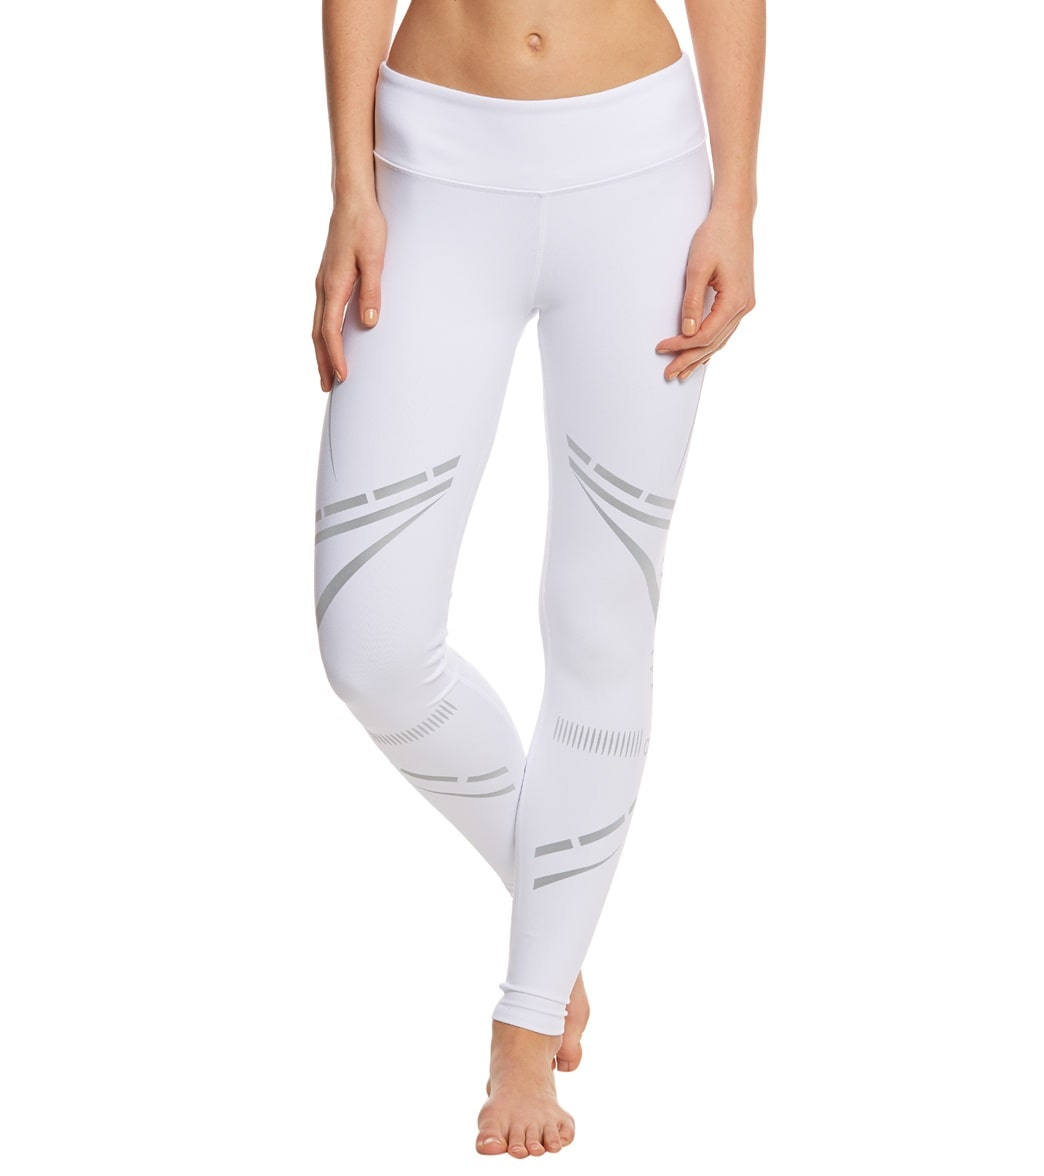 ac15e50bc8da9 Alo Yoga Airbrush Yoga Leggings at YogaOutlet.com - Free Shipping